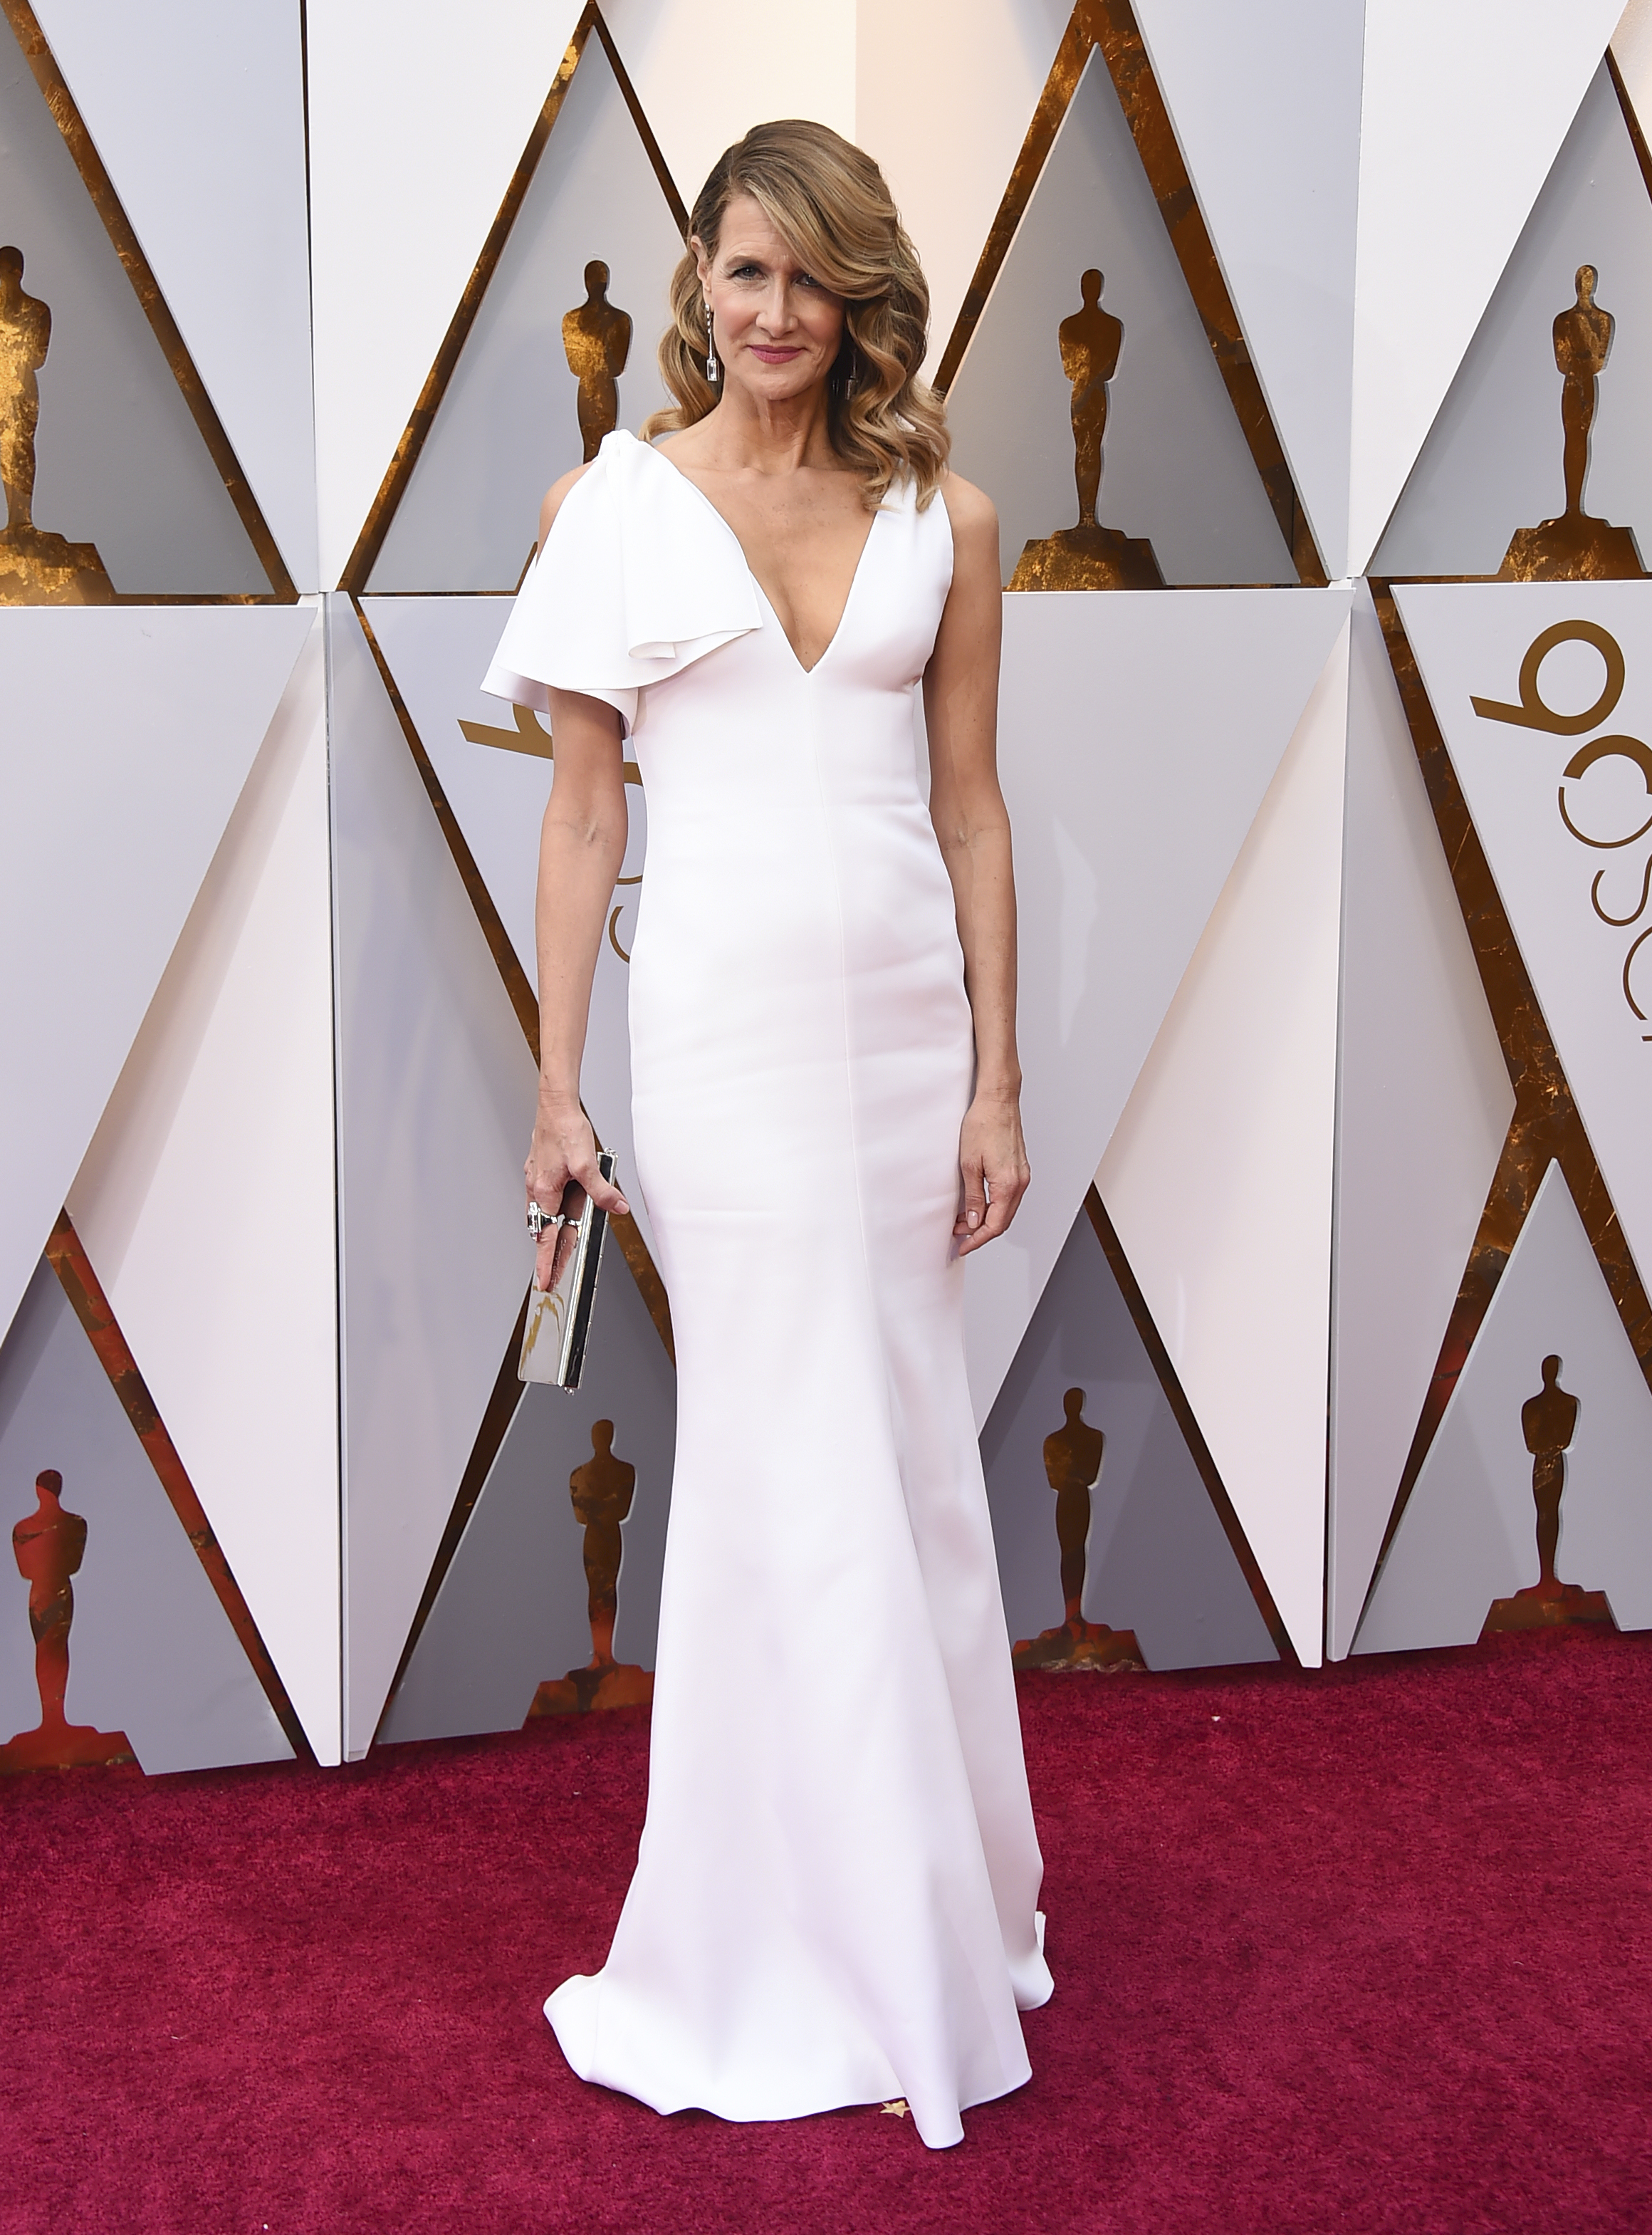 "<div class=""meta image-caption""><div class=""origin-logo origin-image none""><span>none</span></div><span class=""caption-text"">Laura Dern arrives at the Oscars on Sunday, March 4, 2018, at the Dolby Theatre in Los Angeles. (Jordan Strauss/Invision/AP)</span></div>"